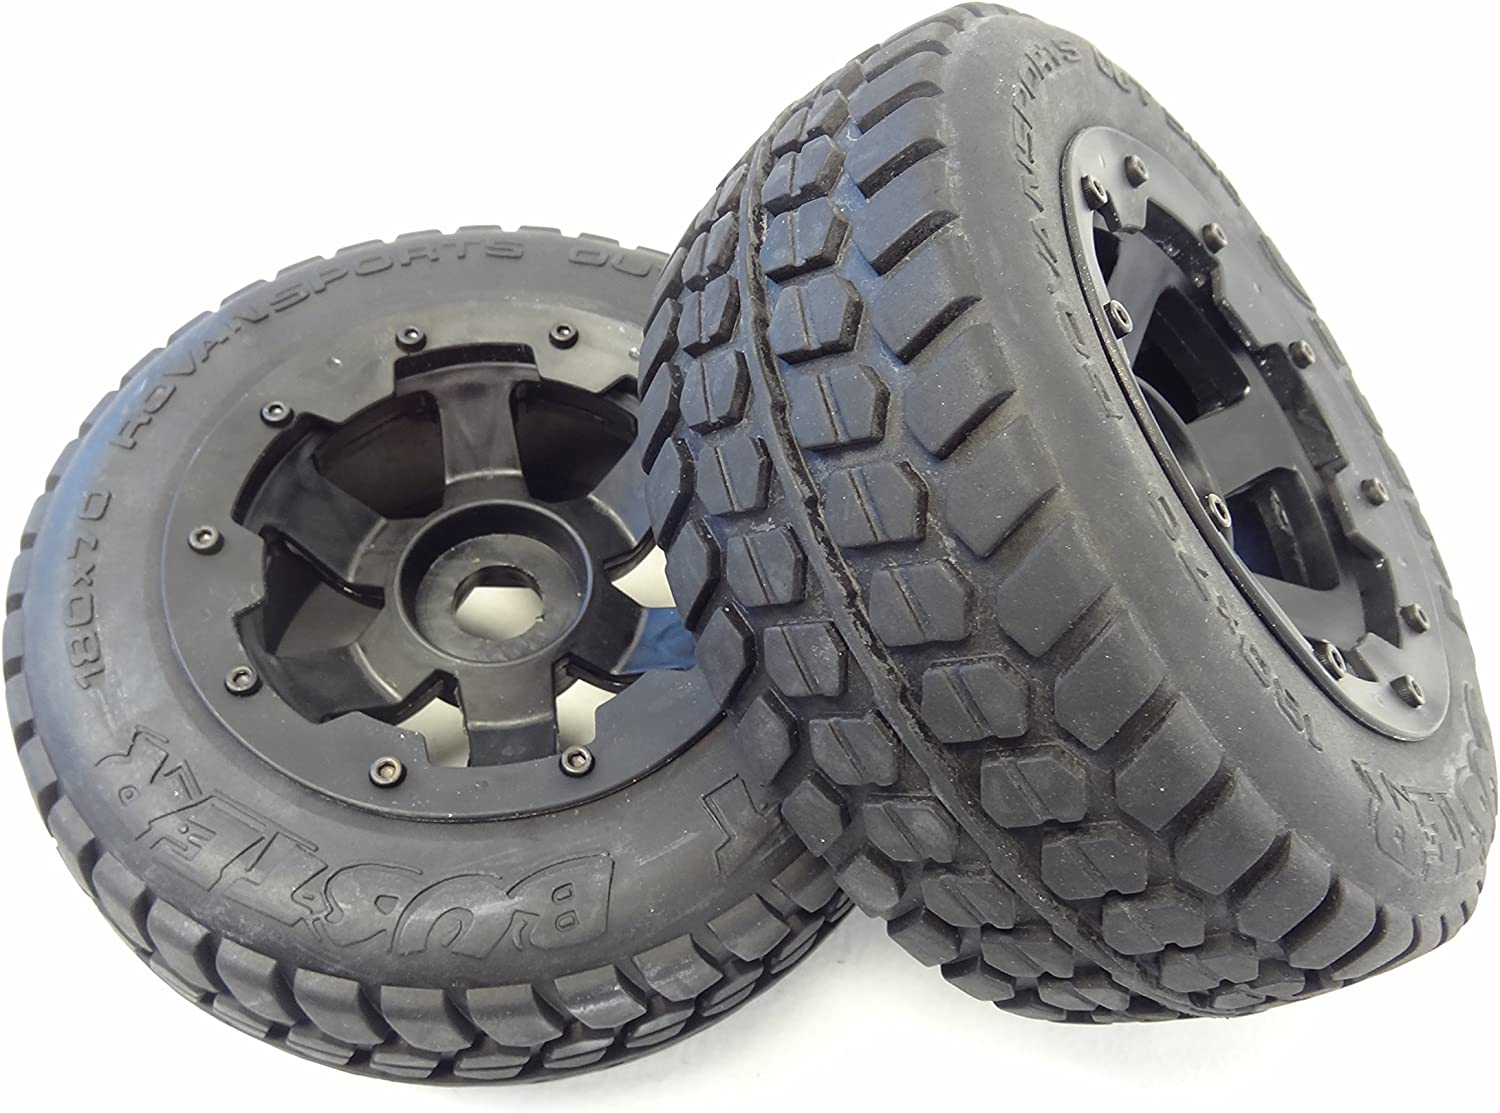 Amazon Com 1 5 Rovan Terminator Rear Truck Road Wheels Hpi Baja 5t 5sc King Motor Losi 5ive Toys Games